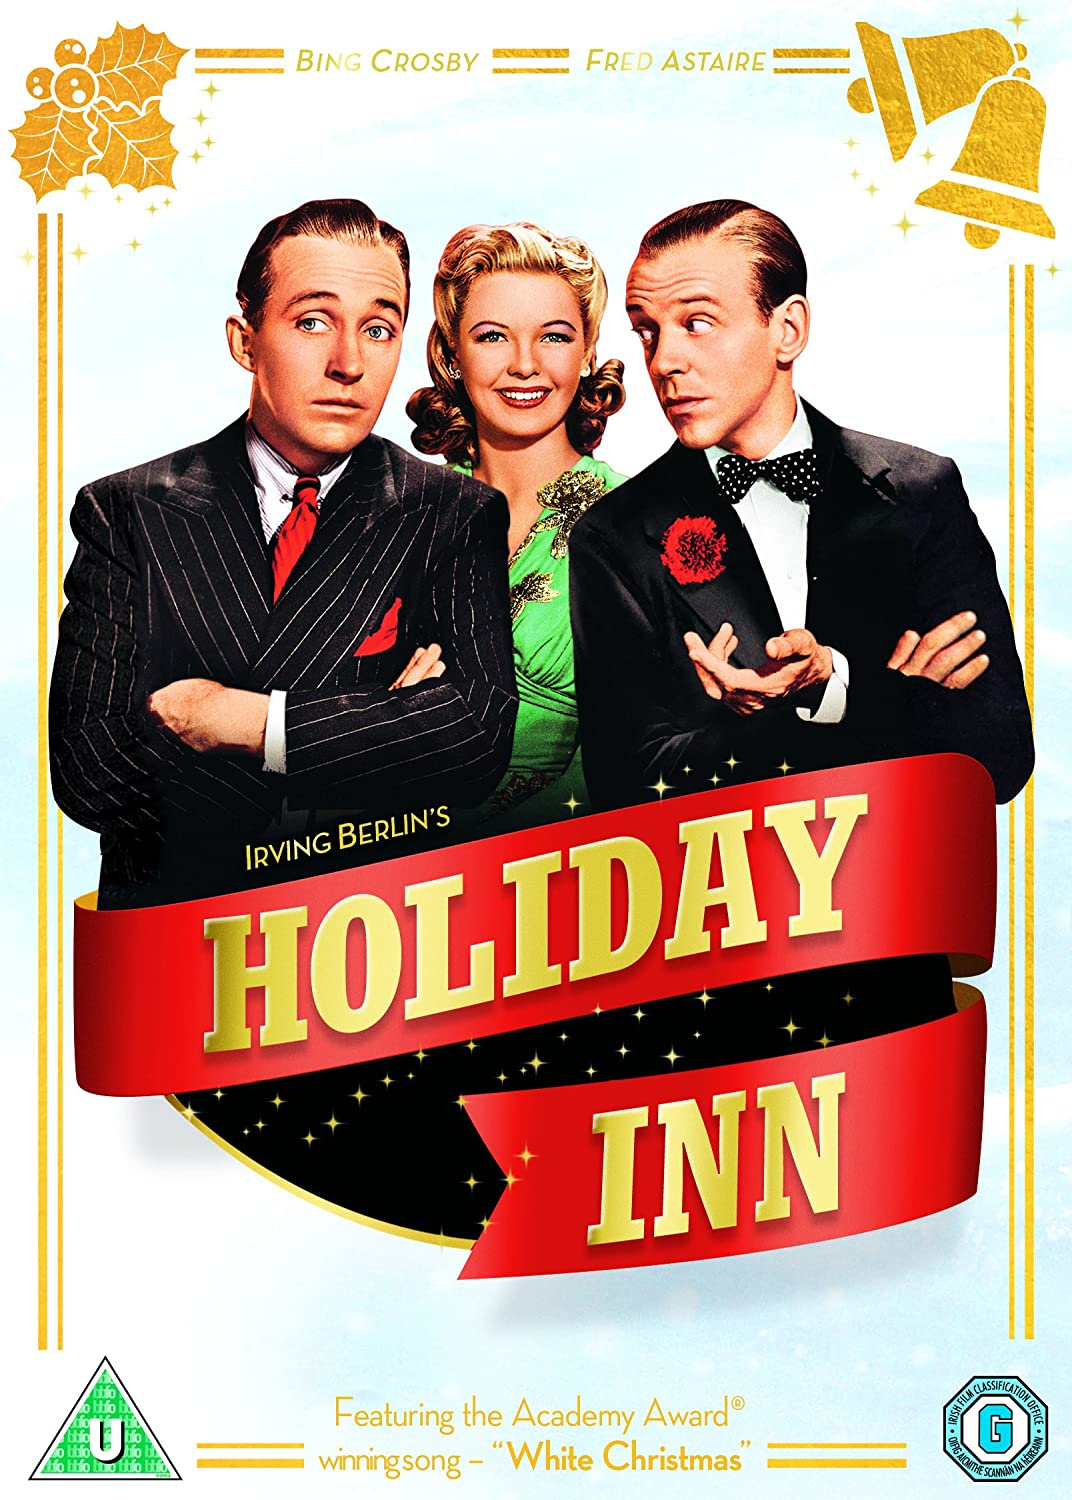 Holiday Inn 2 Disc Special Edition Dvd 1942 Amazon Co Uk Bing Crosby Fred Astaire Marjorie Reynolds Virginia Dale Walter Abel Mark Sandrich Bing Crosby Fred Astaire Dvd Blu Ray